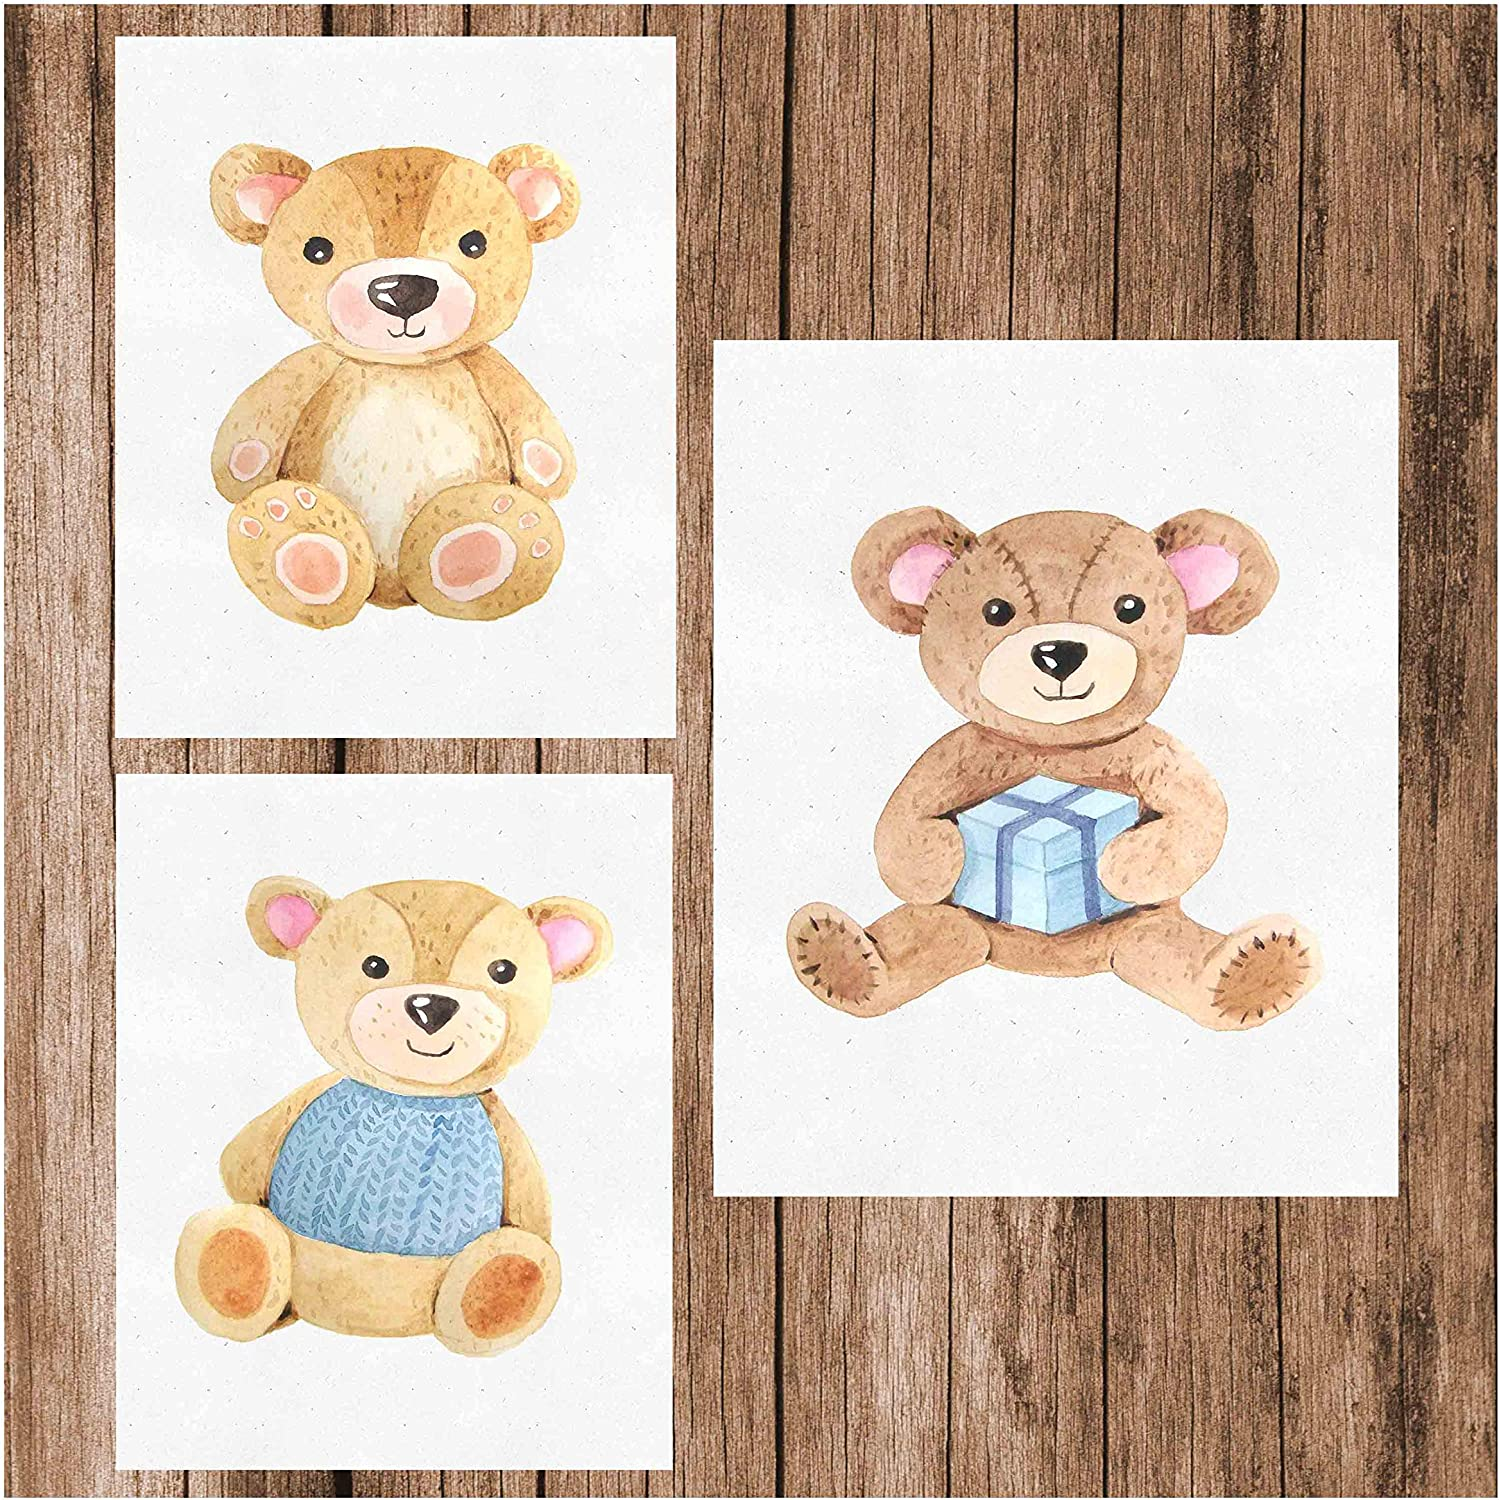 """Simply Remarkable Teddy Bear Watercolor Nursery Wall Art Print (Set of 3) - Unframed 8""""x10"""" Posters for Stunning Baby Nursery Home Decor (Blue)"""